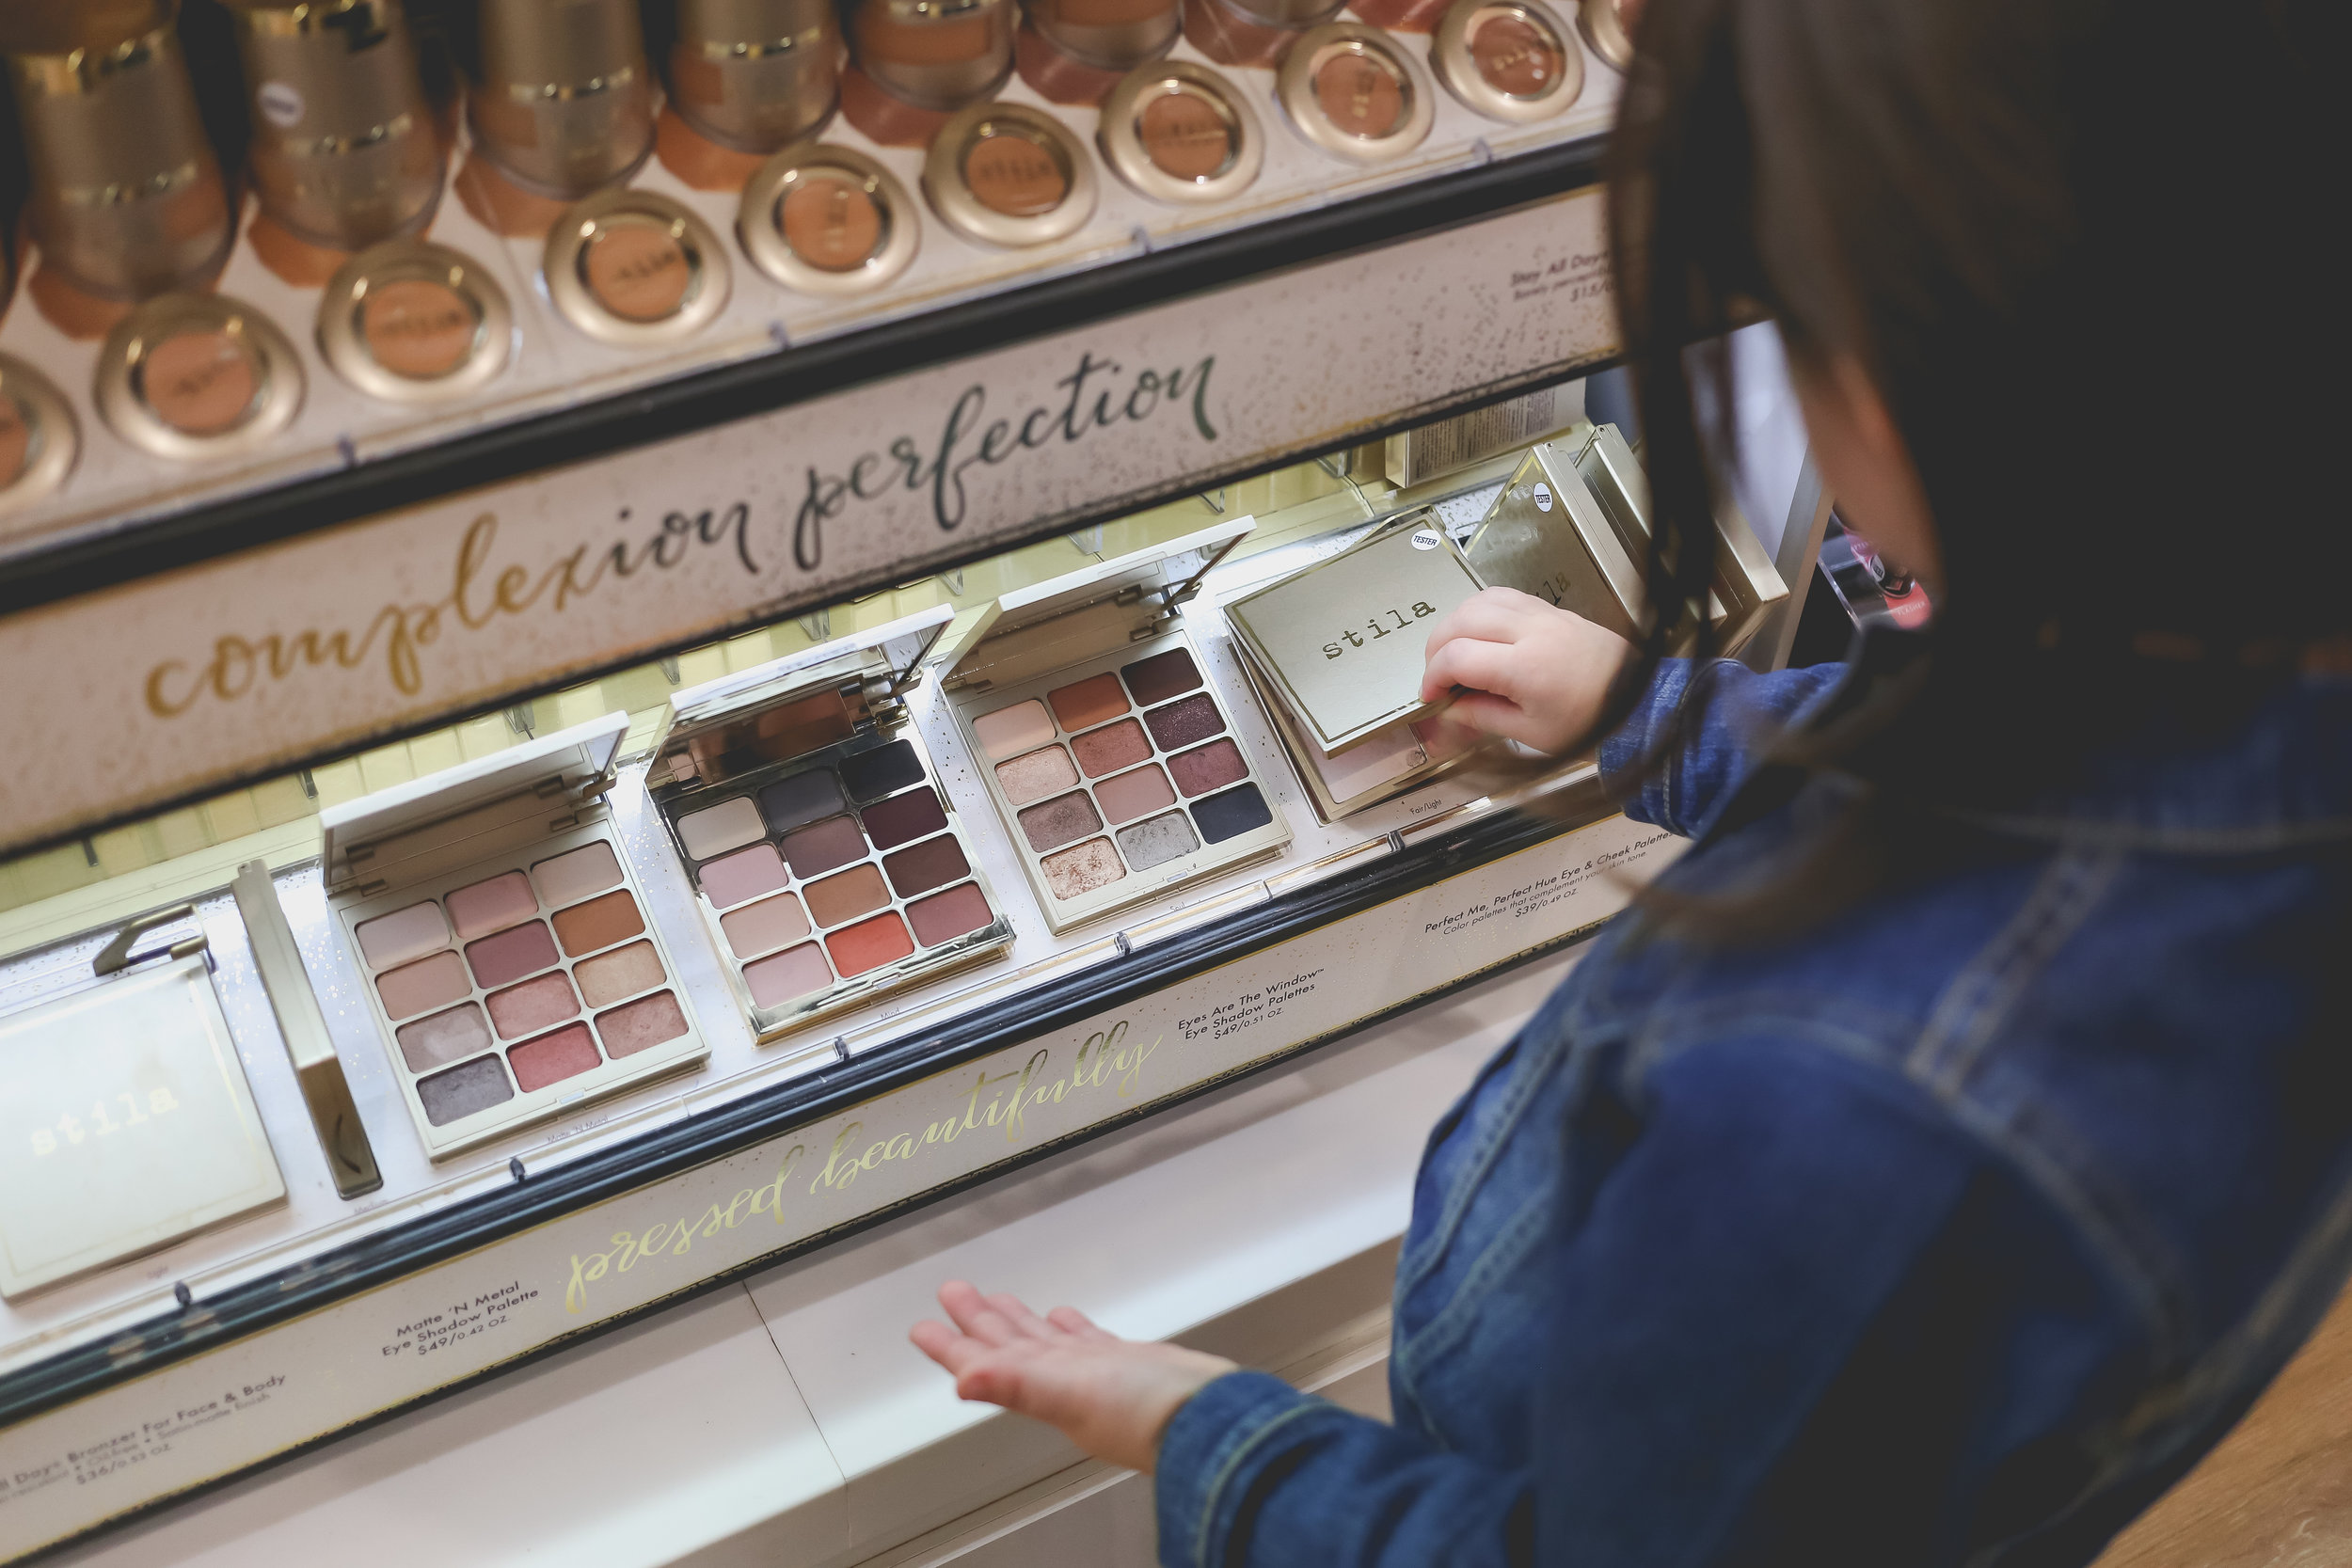 Shopping for makeup at Ulta beauty supply in Staten Island, NY. Documentary family photography.